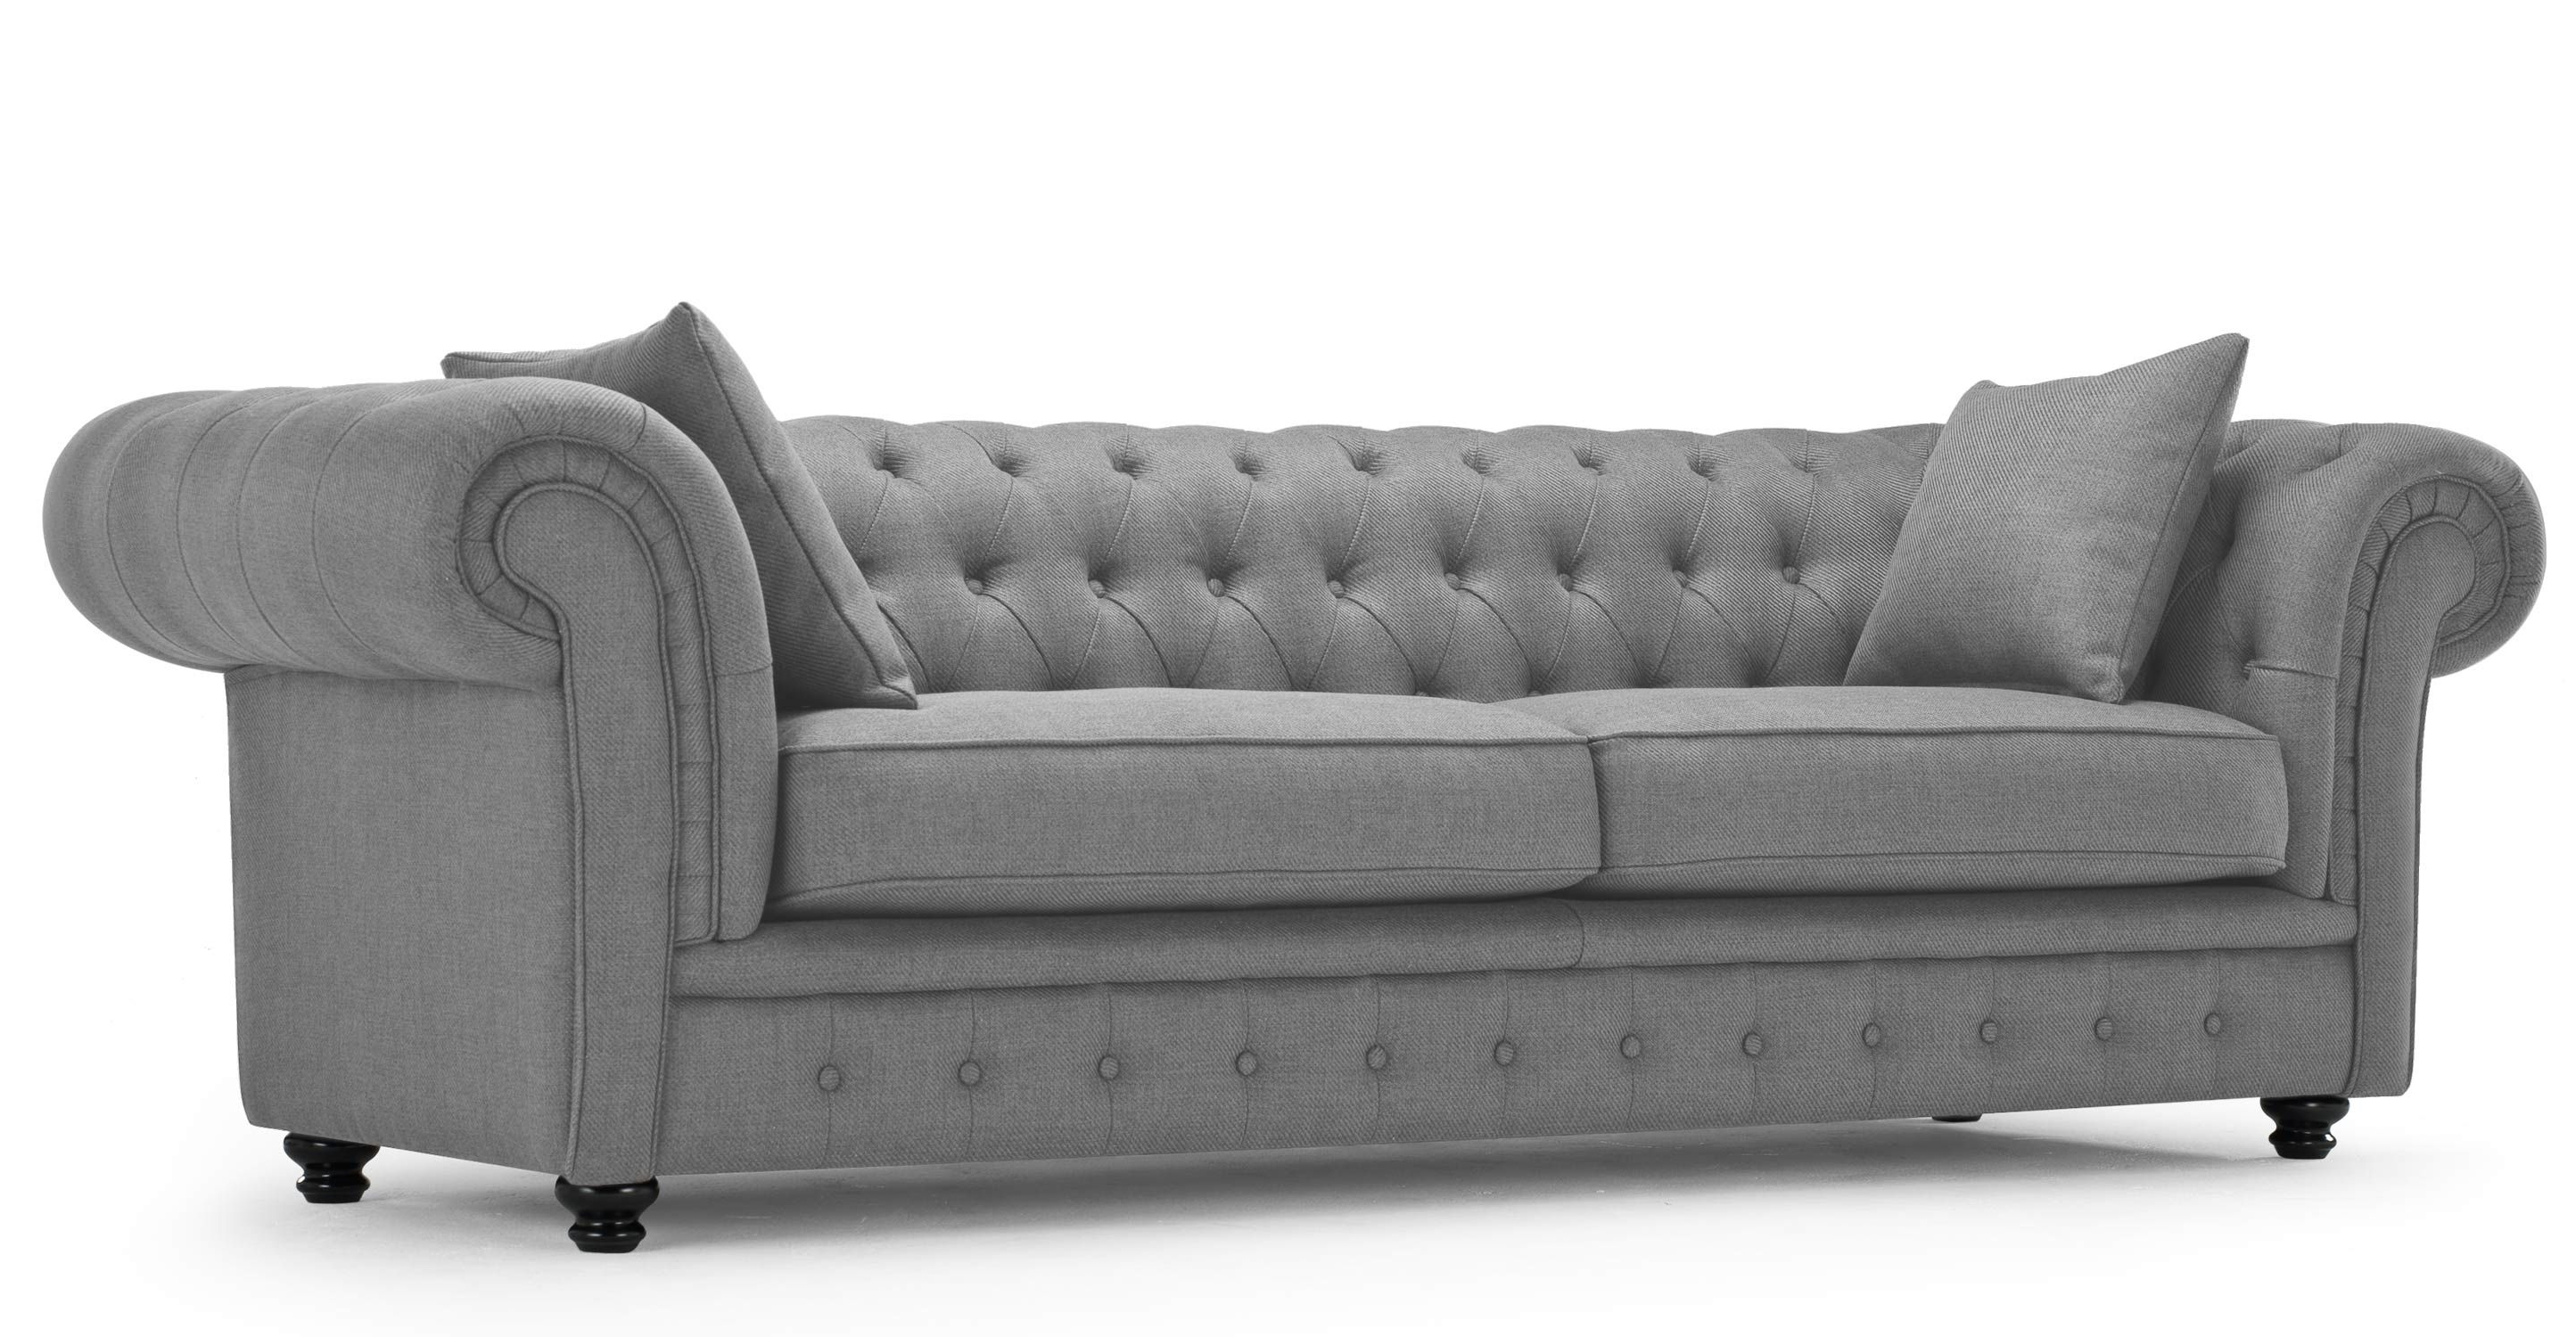 Sofa : Gray Velvet Tufted Couch Grey Sofa And Loveseat Set Grey with regard to Well-known Affordable Tufted Sofas